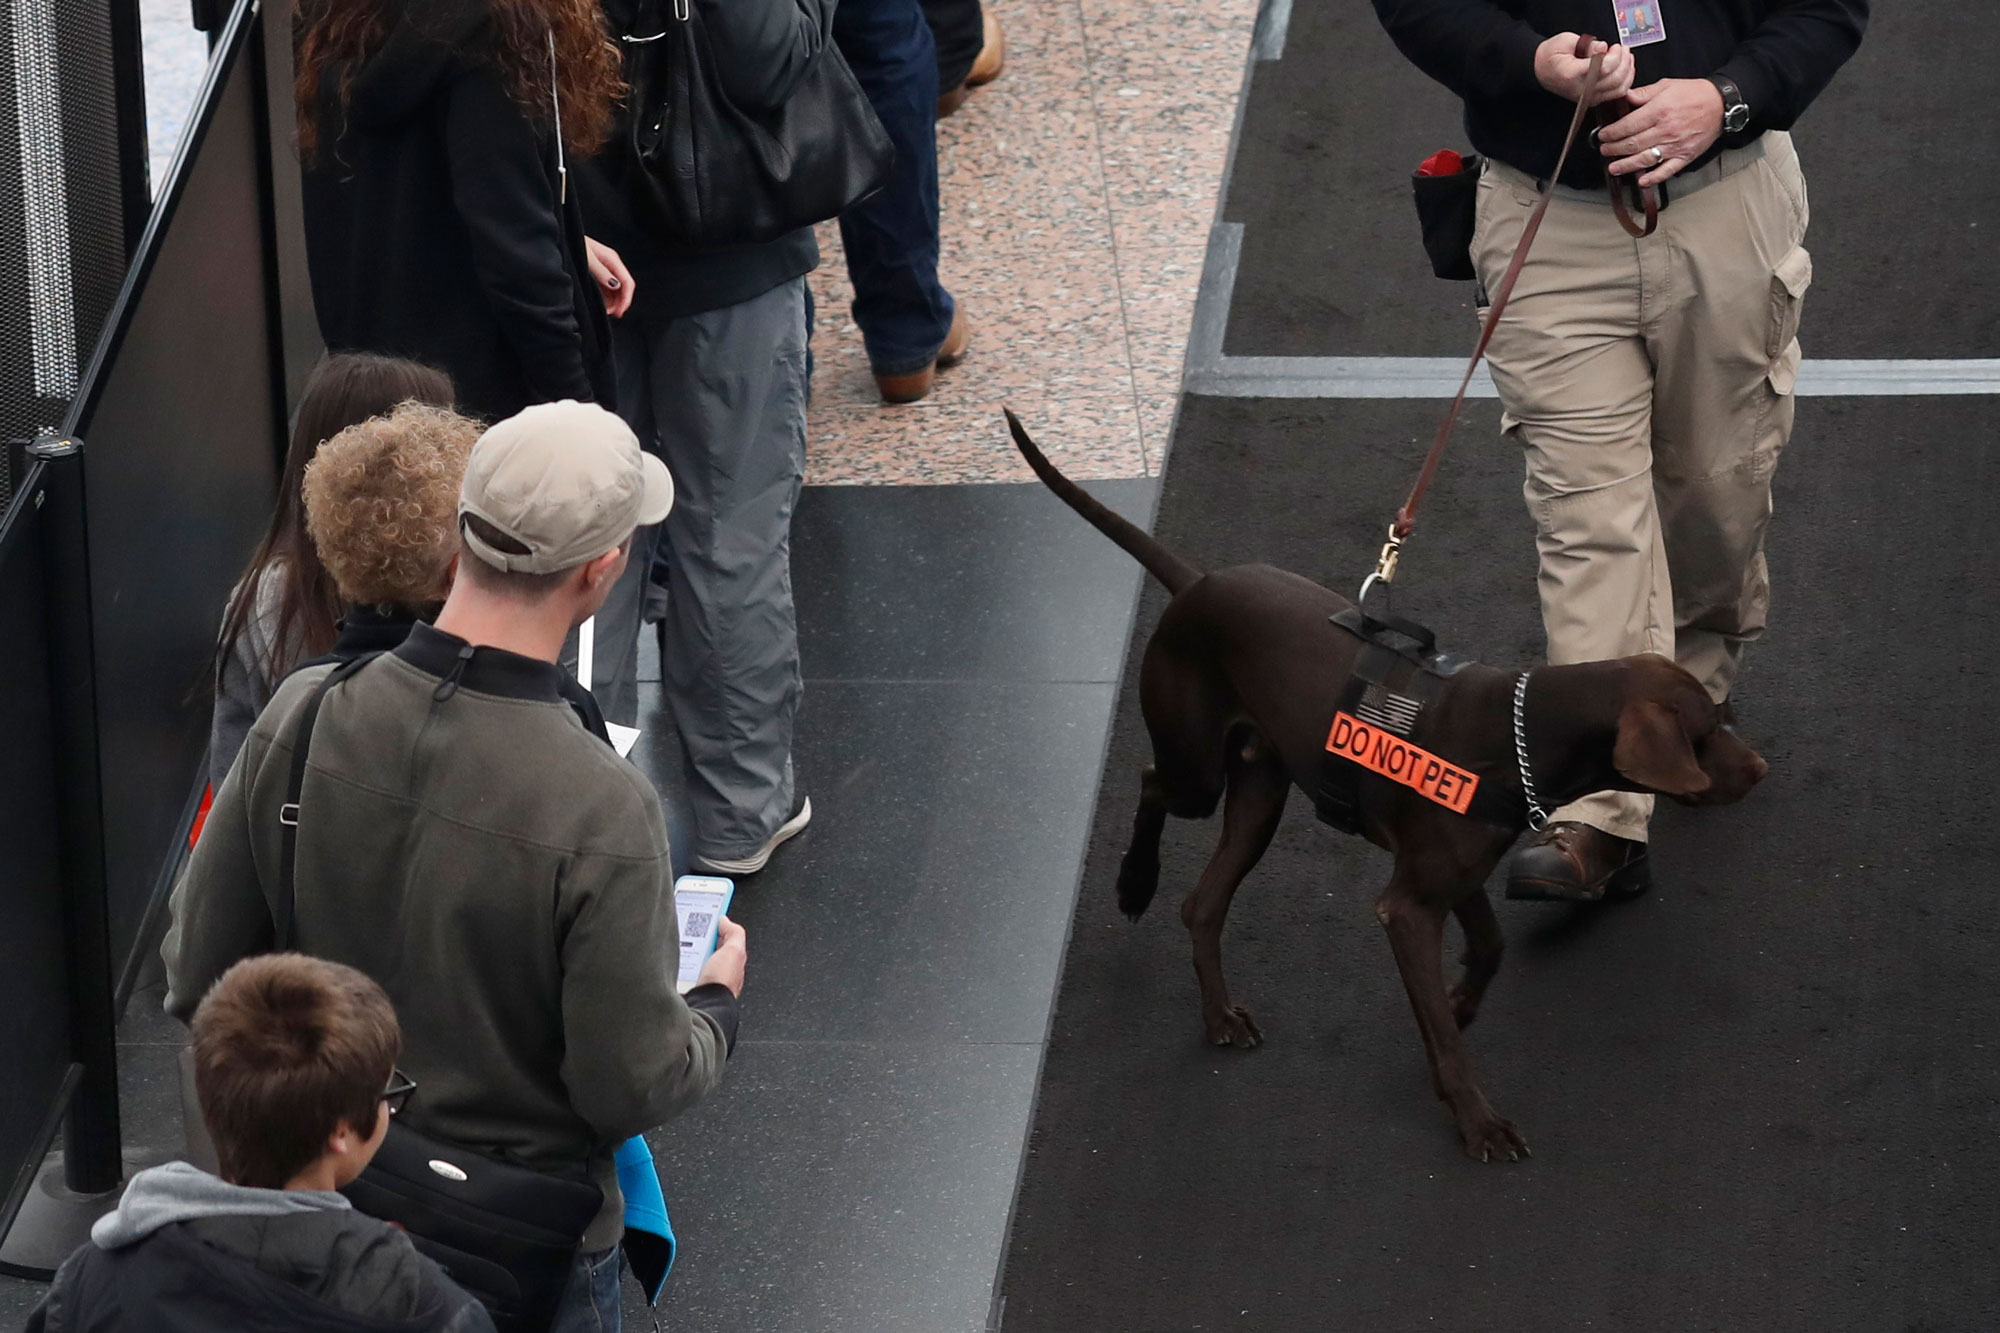 <p>A security officer guides his dog along a long line of travelers waiting at a checkpoint in Denver International Airport early Wednesday, Nov. 23, 2016, in Denver.</p>